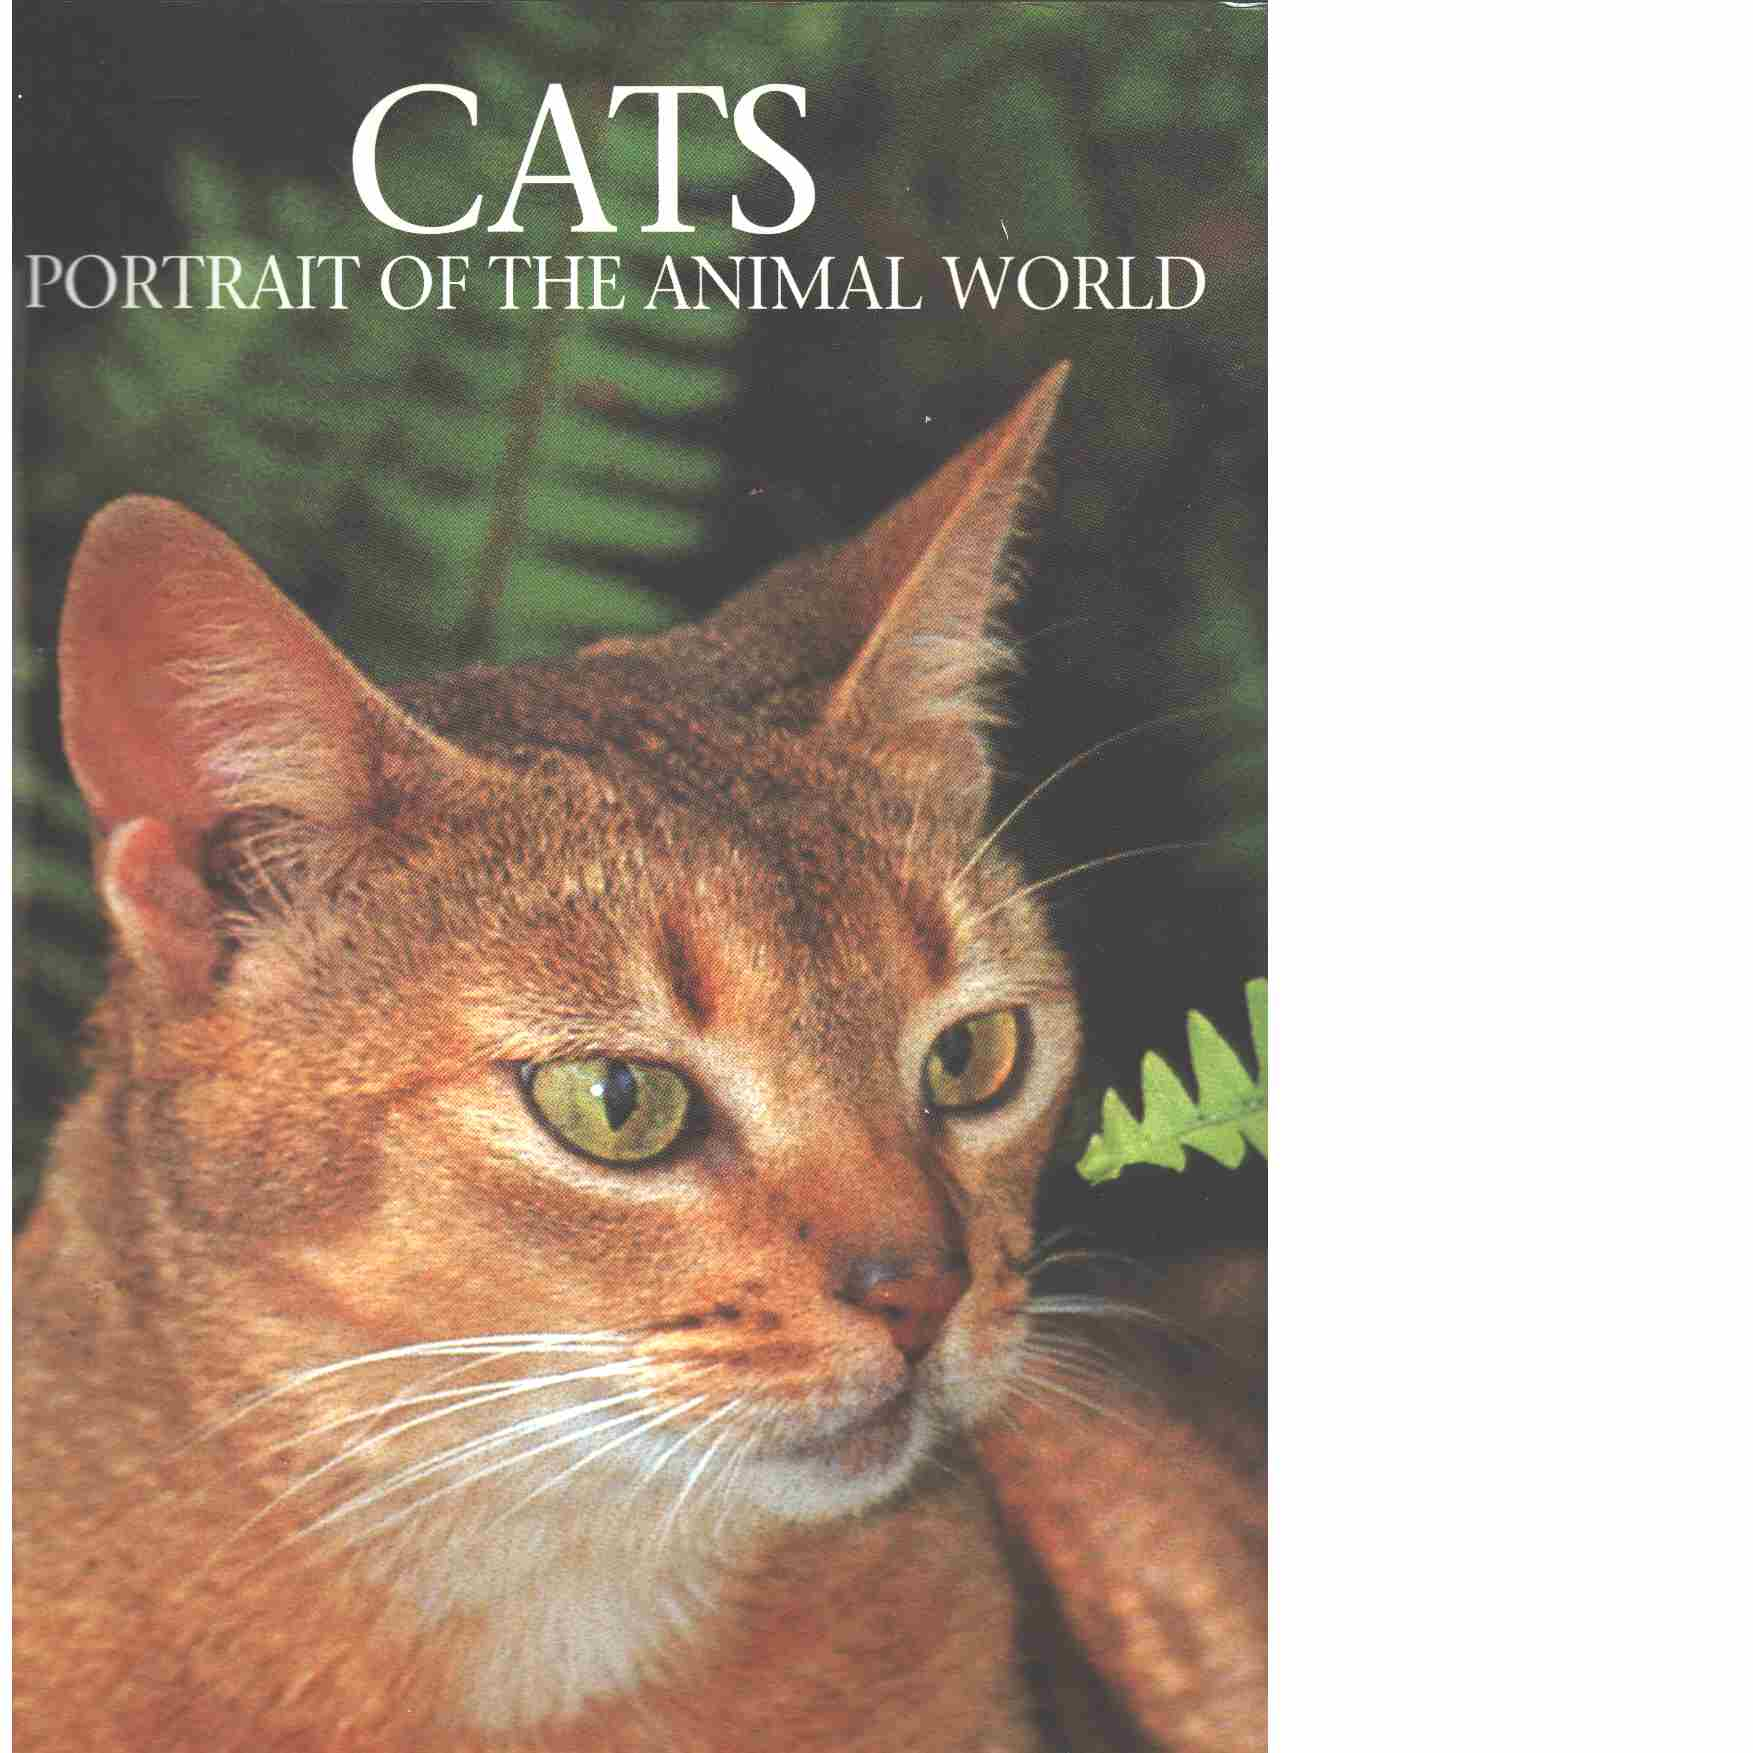 Cats (Portraits of the Animal World) - Schenck, Marcus and Caravan, Jill